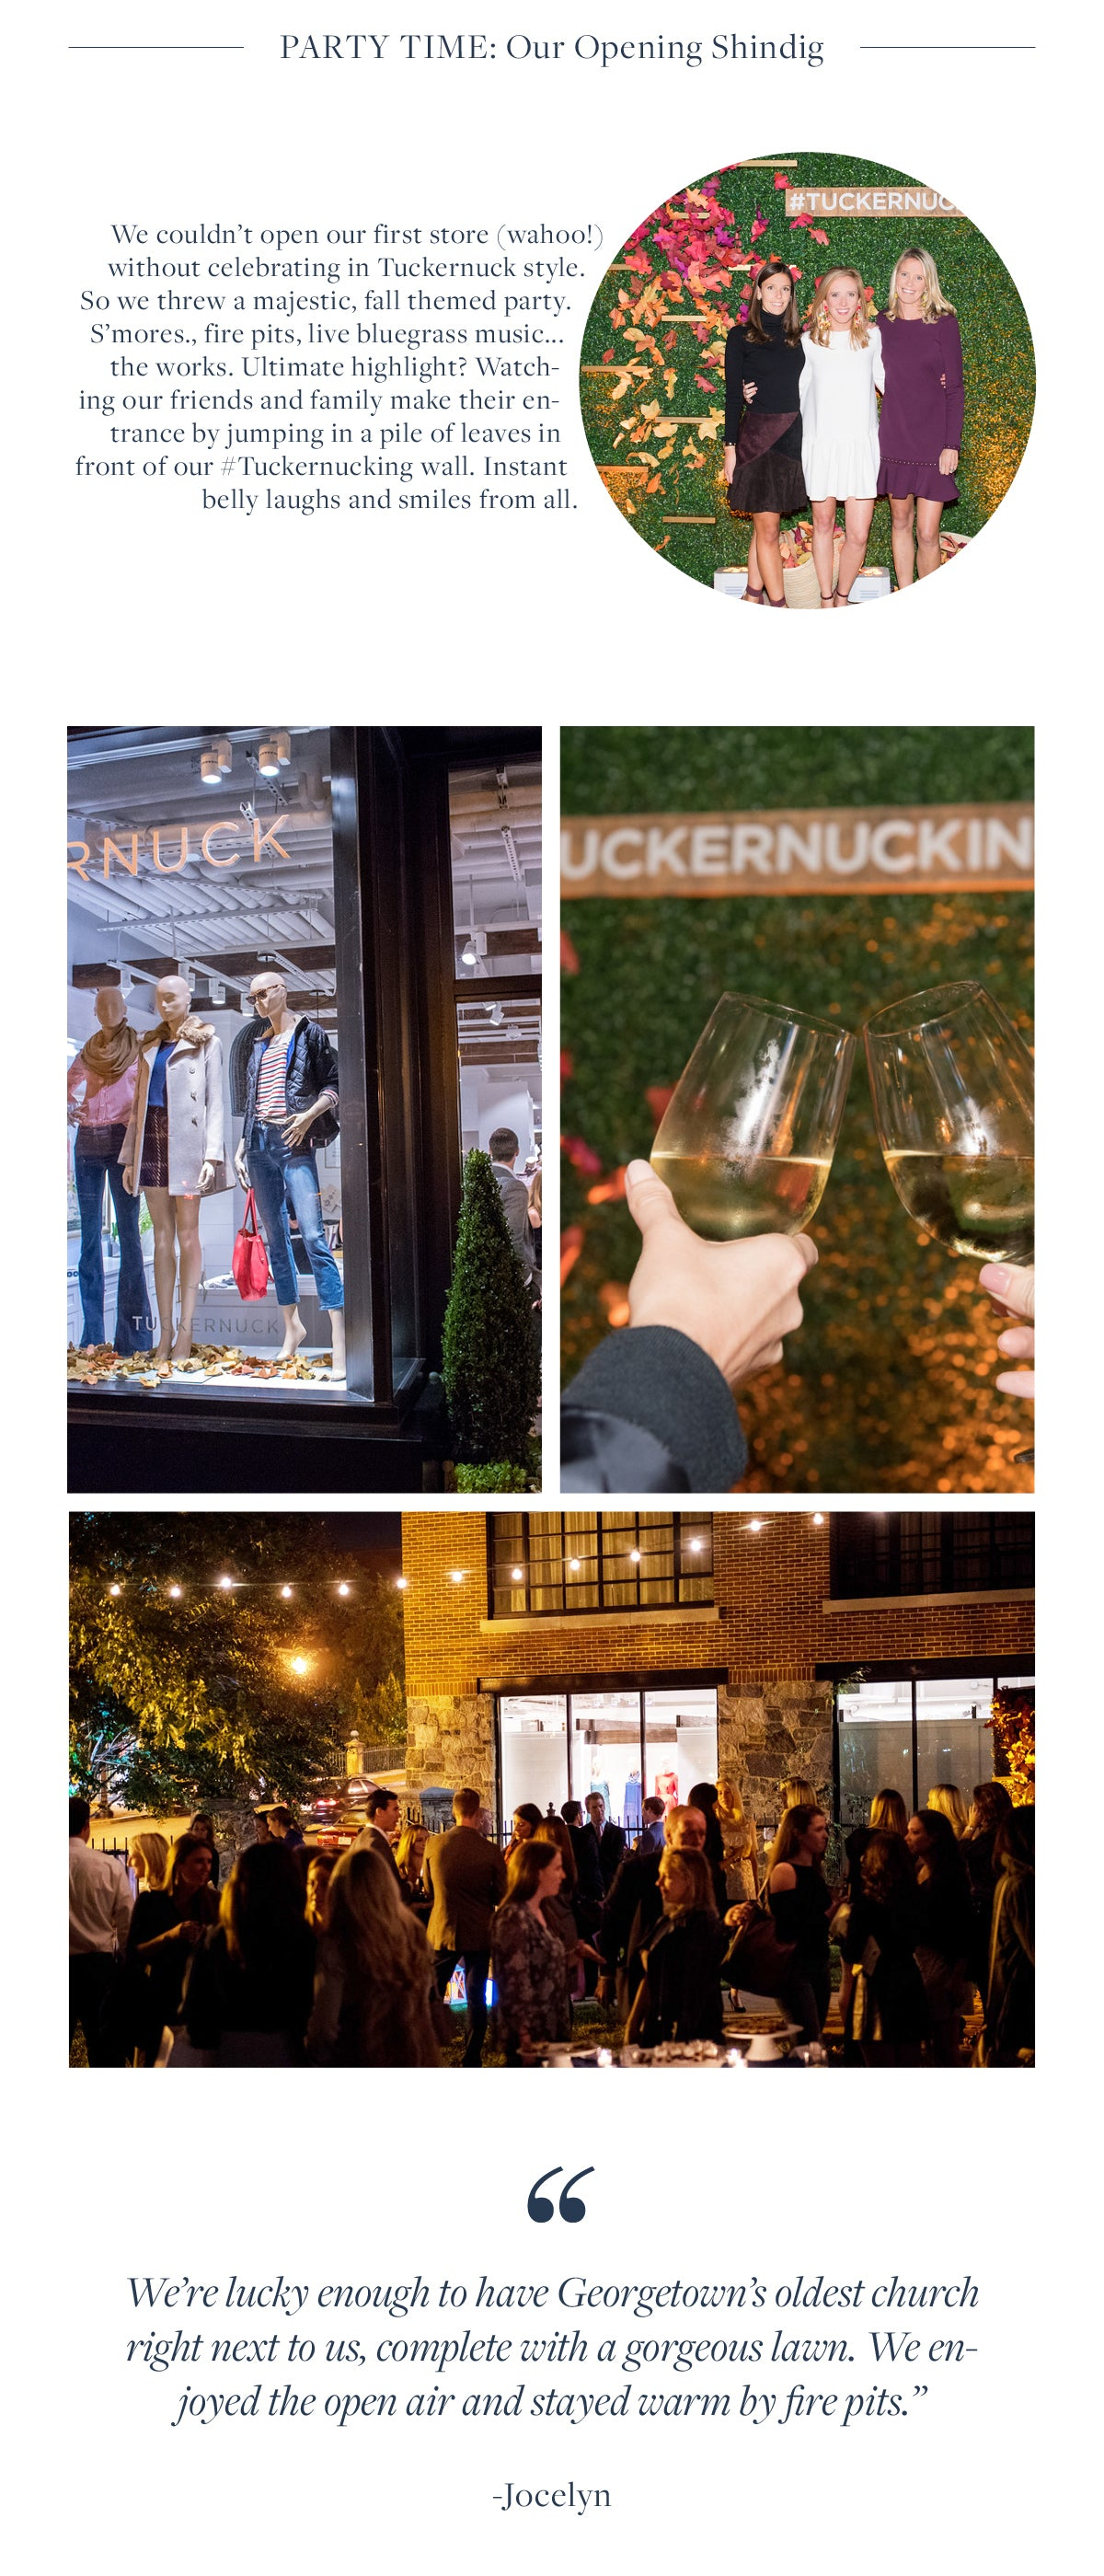 We couldn't open our first store (wahoo!) without celebrating in Tuckernuck style. So we threw a majestic, fall themed party. S'mores., fire pits, live bluegrass music... the works. Ultimate highlight? Watching our friends and family make their entrance by jumping in a pile of leaves in front of our #Tuckernucking wall. Instant belly laughs and smiles from all.